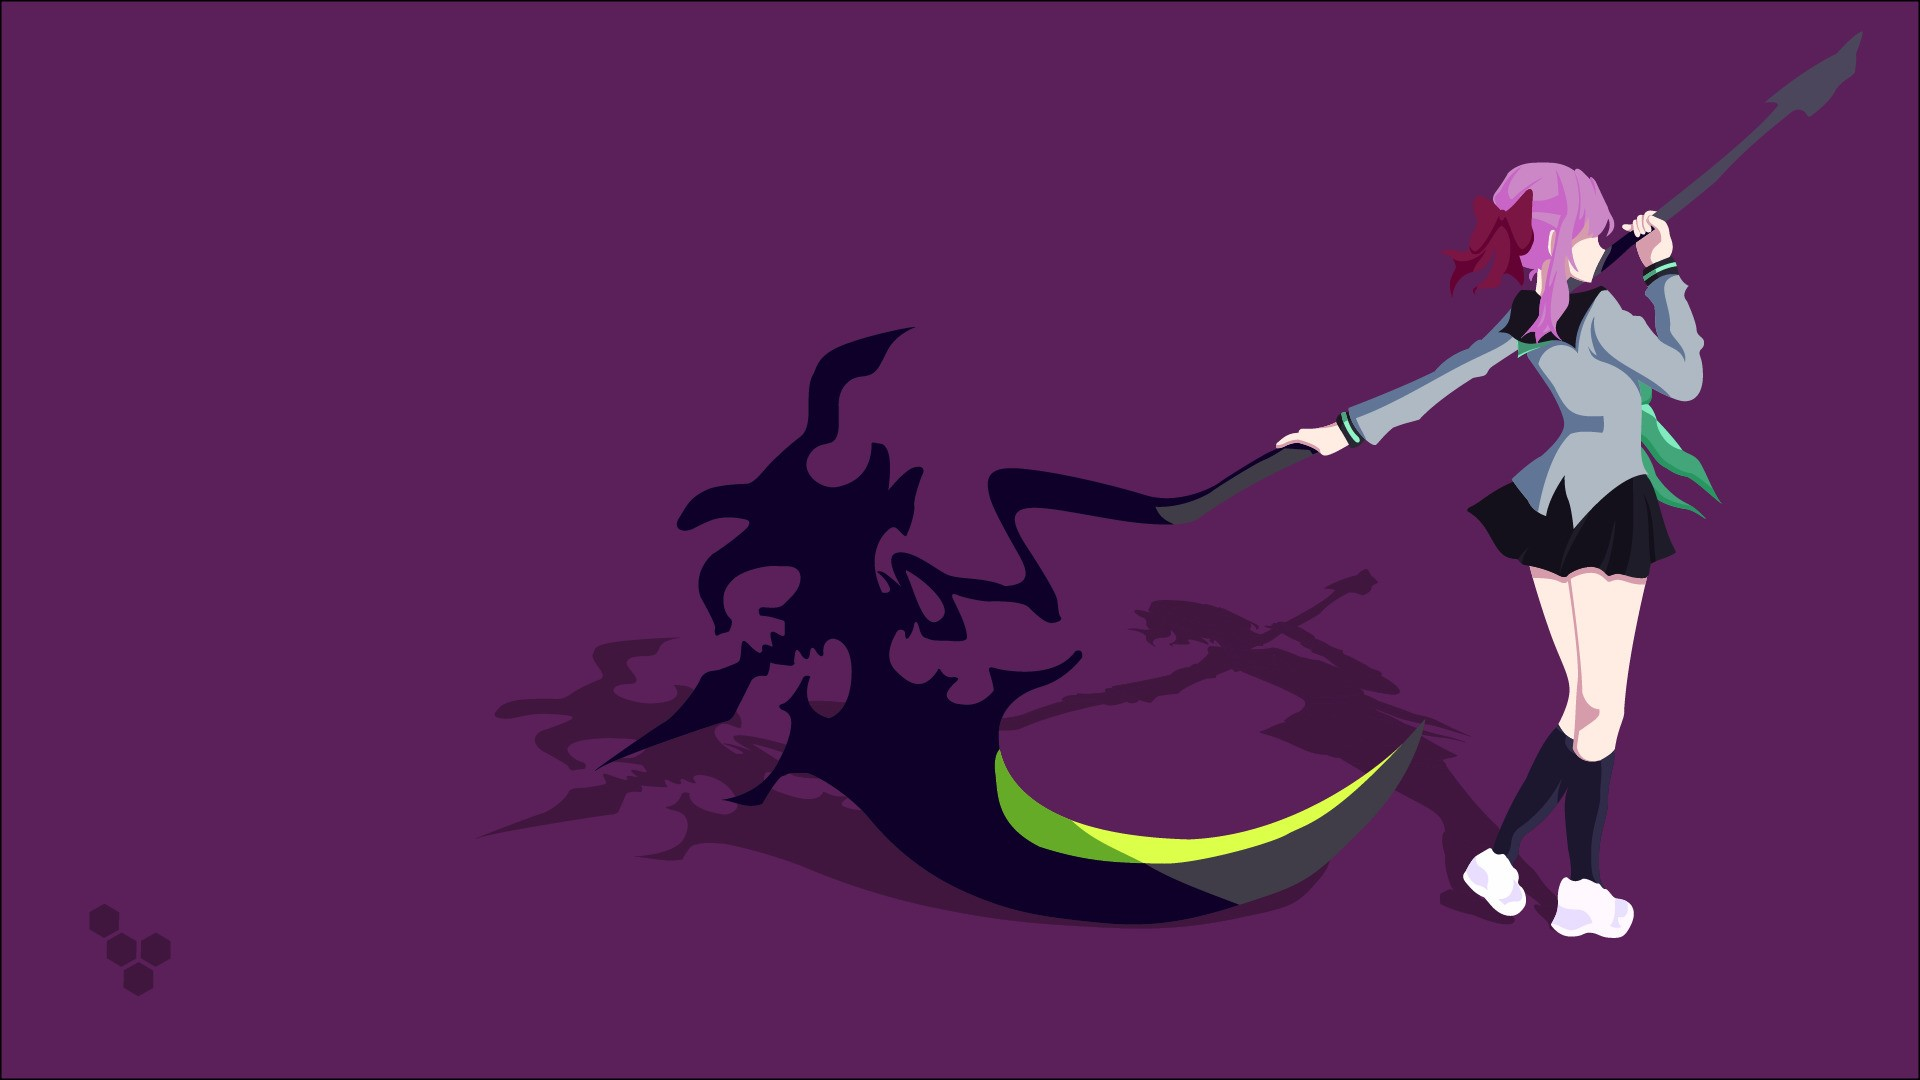 Hiiragi Shinoa Scythe Vectors Vector Art Simple Background - Hd